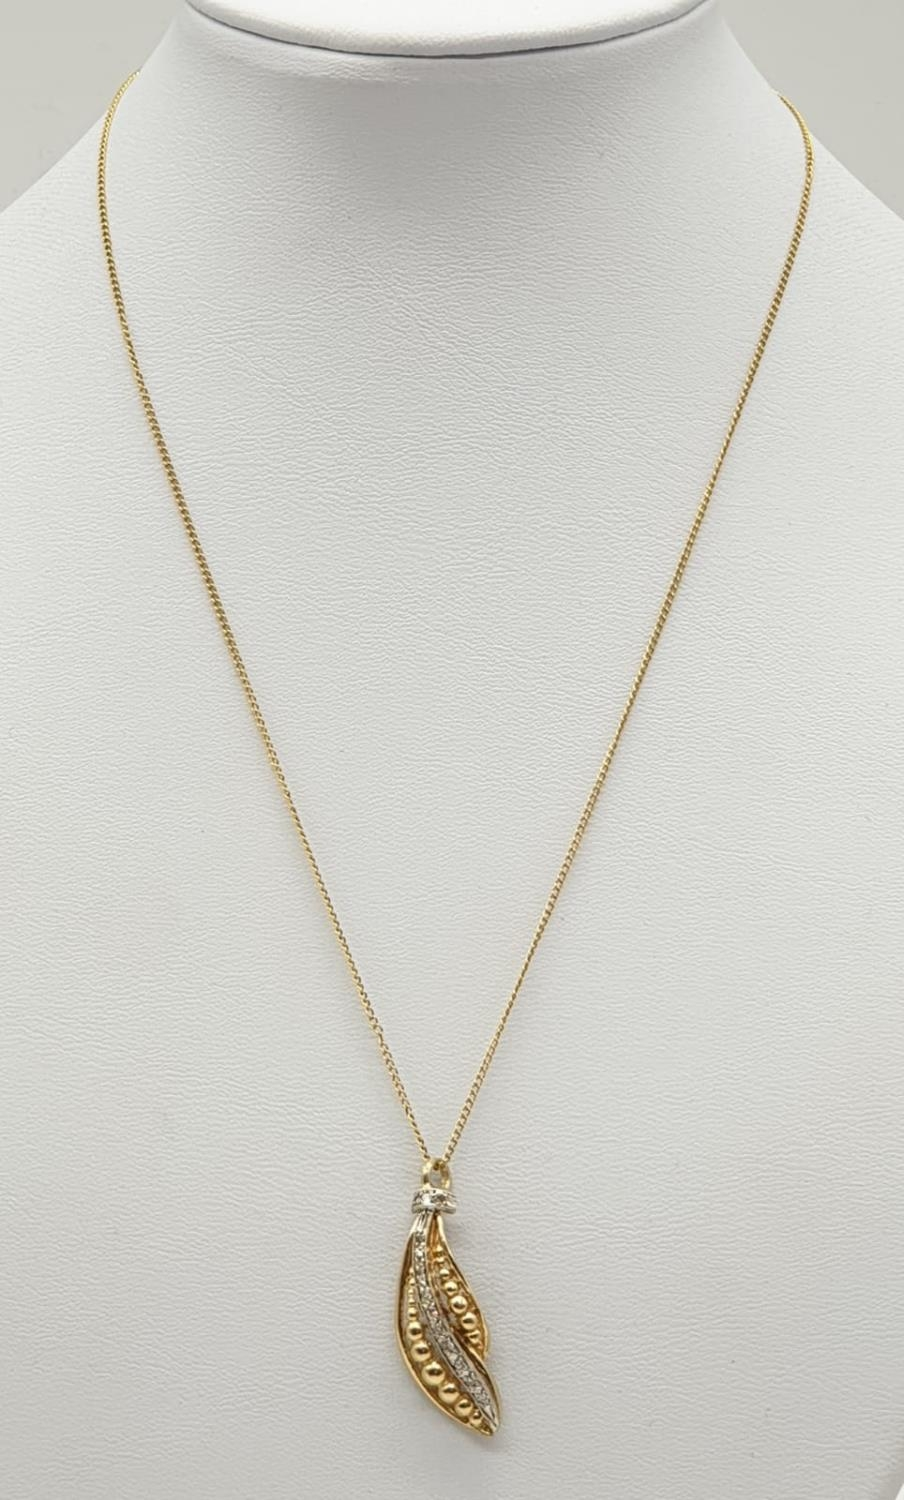 18ct gold diamond set pendant on chain, weight 3.69g and 40cm long, pendant 3 x 1cm - Image 4 of 9